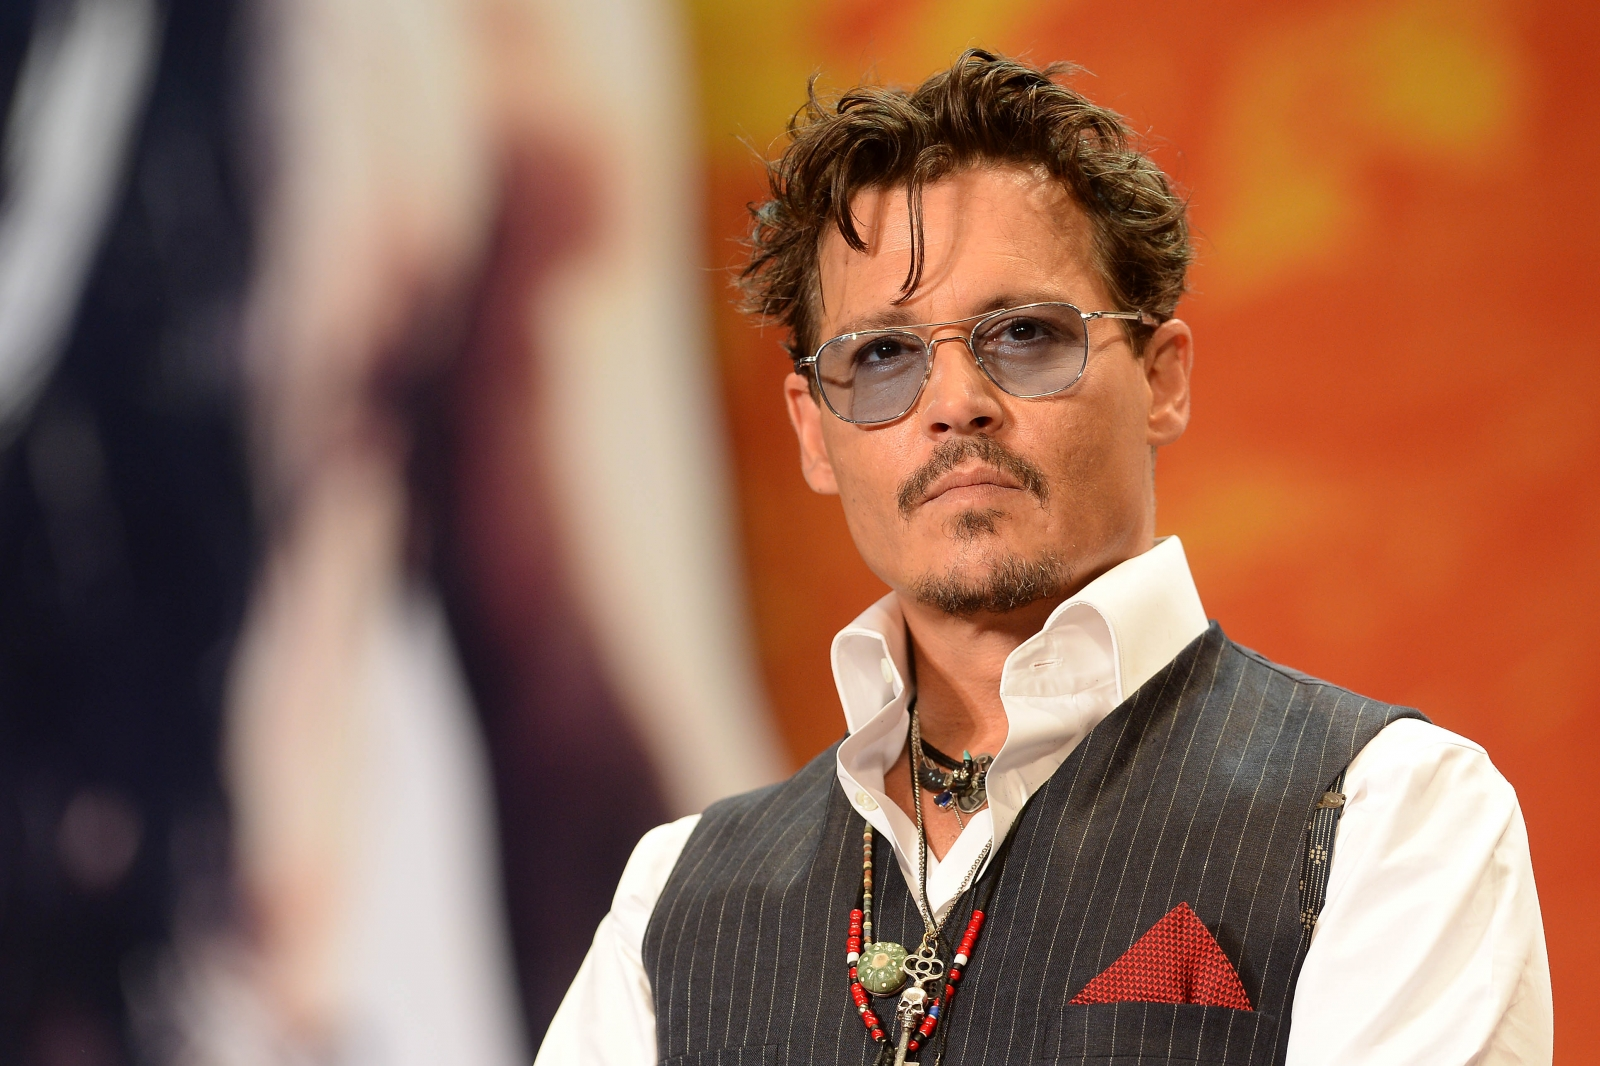 Johnny Depp Joins the Fantastic Beasts and Where to Find Them Sequel